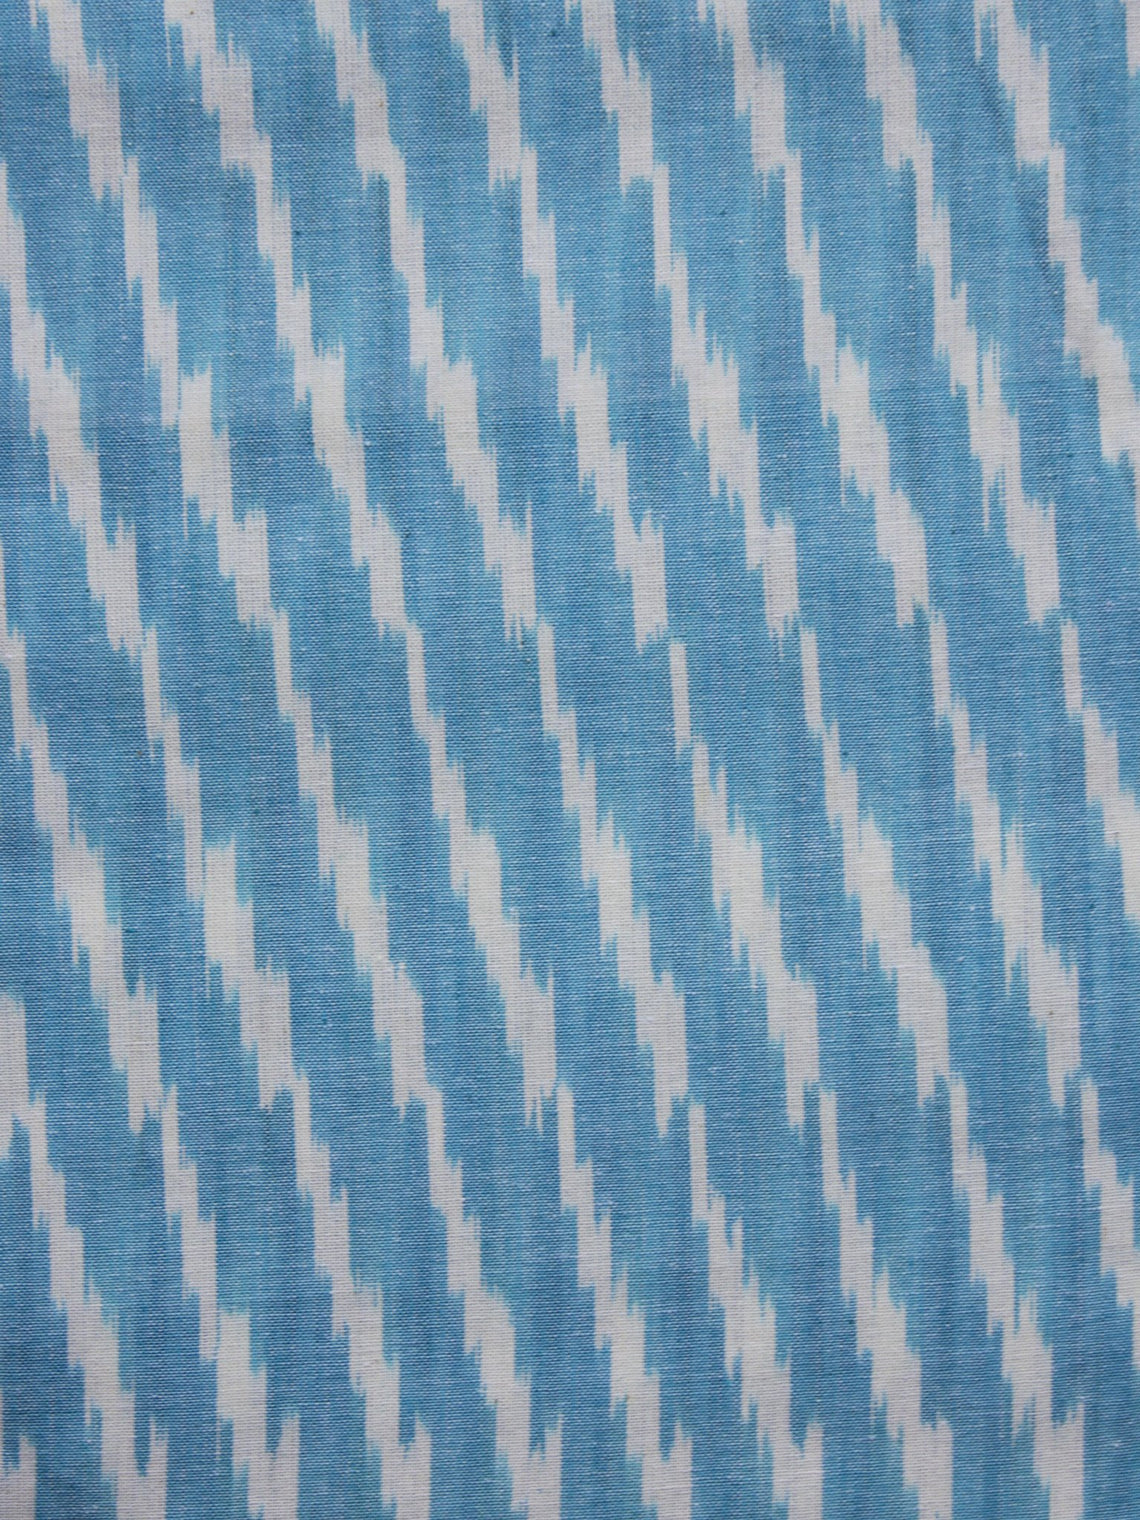 Turquoise Ivory Pochampally Hand Woven Ikat Fabric Per Meter - F002F914